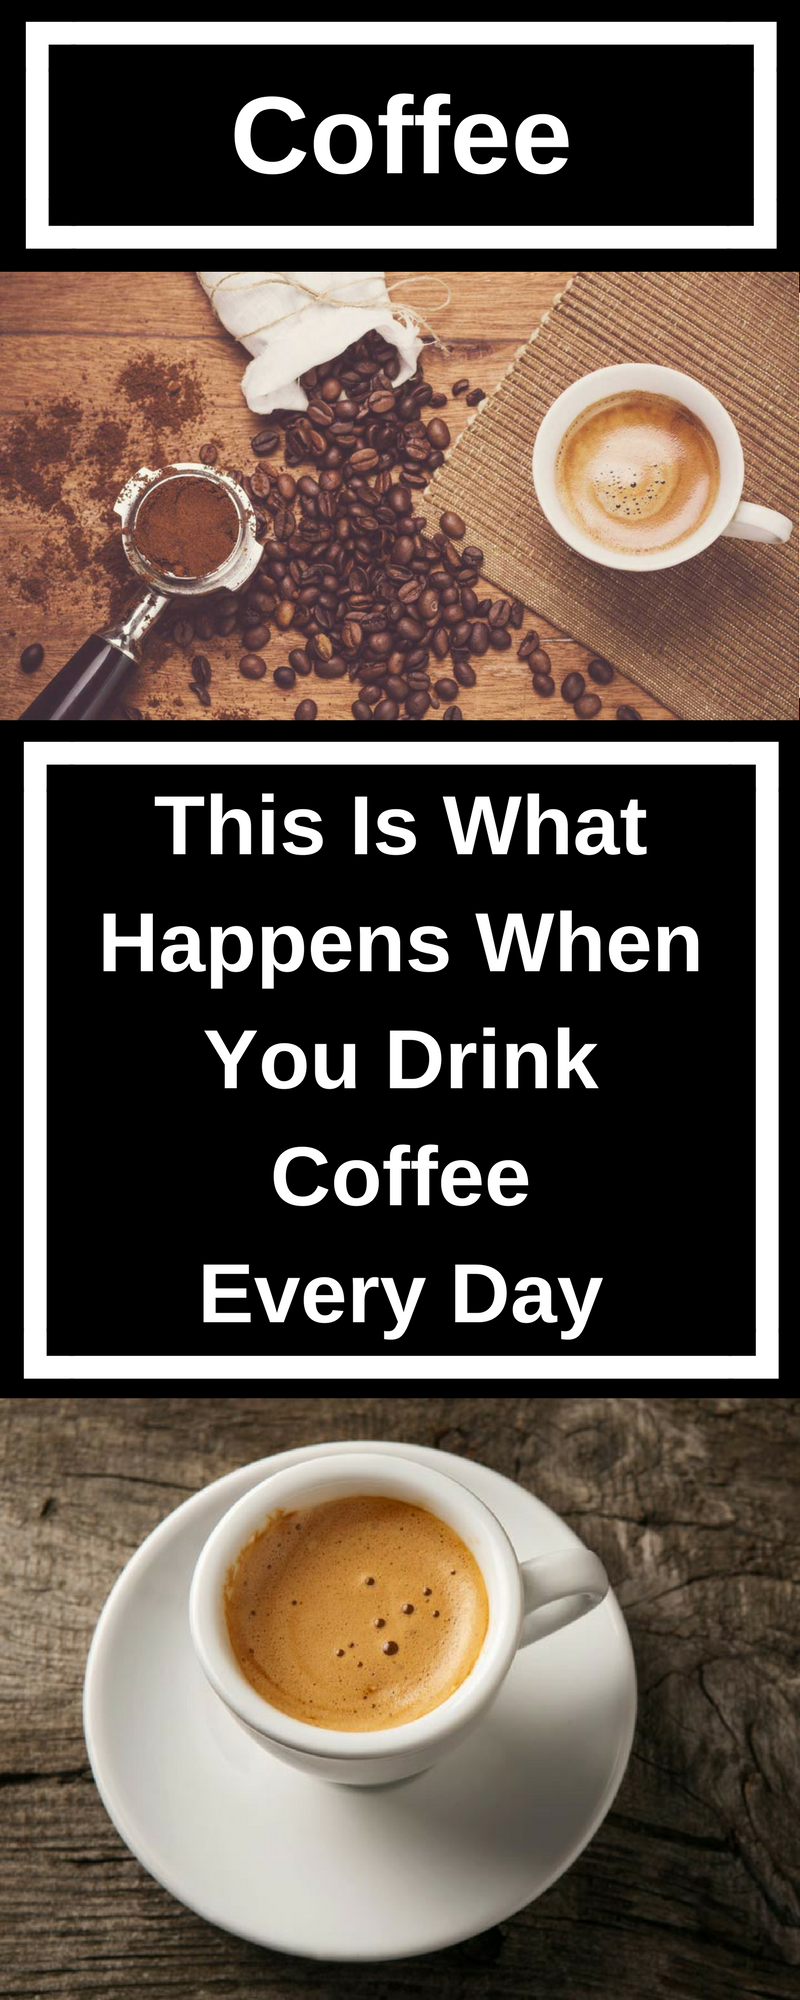 This Is What Happens When You Drink Coffee Every Day Coffeescrubface Black Coffee Benefits Coffee Benefits Coffee Scrub Diy